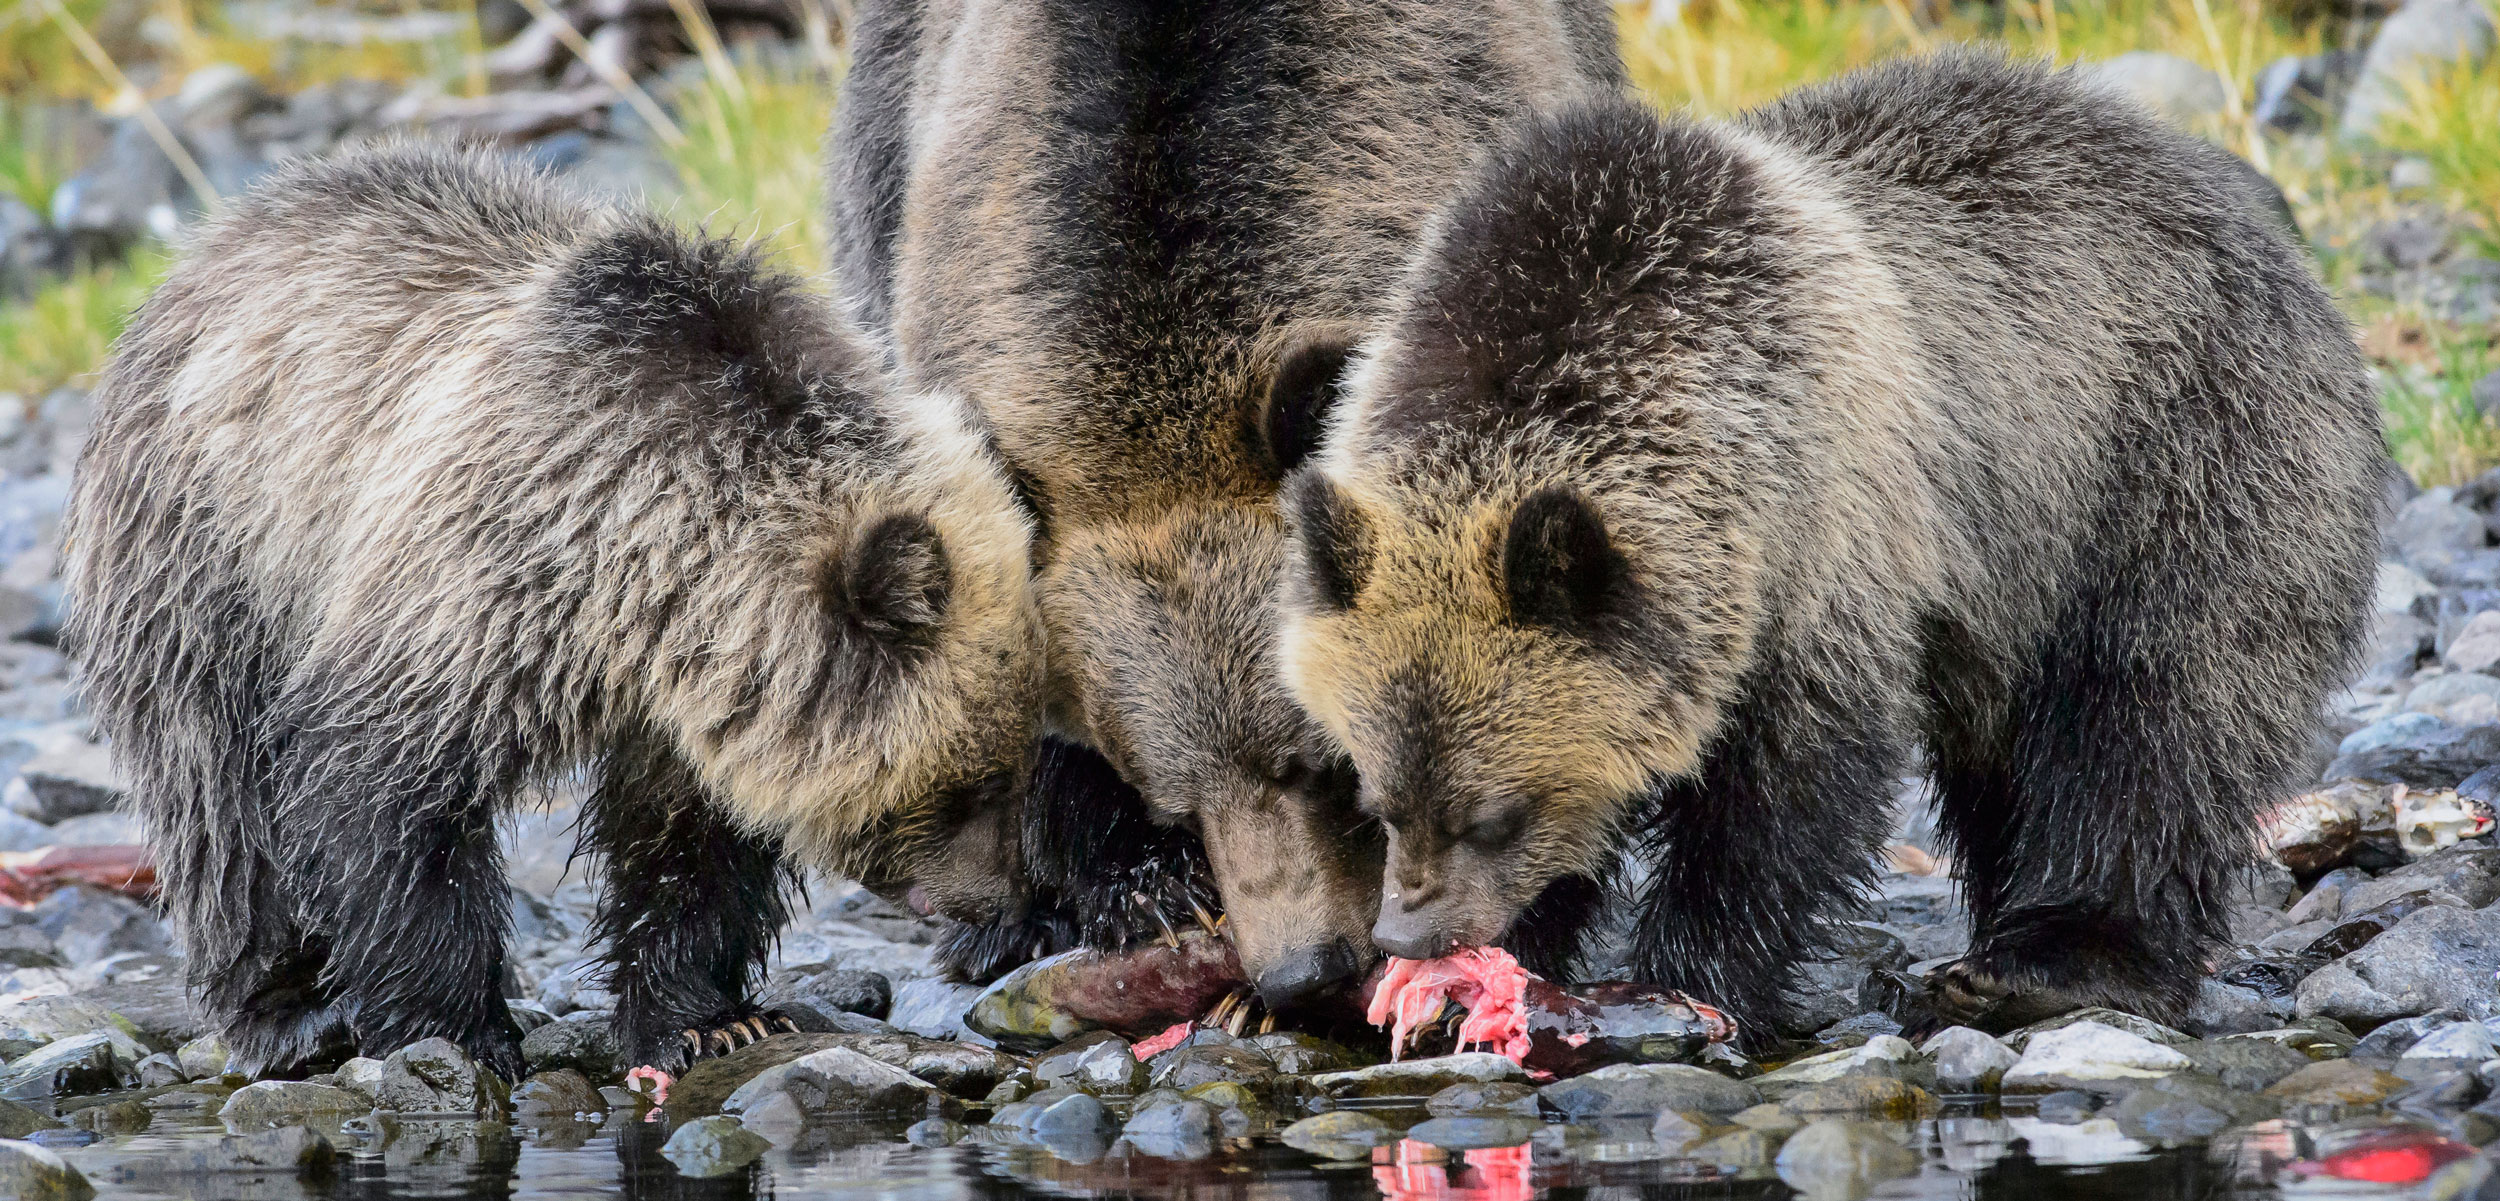 grizzly bears eating salmon